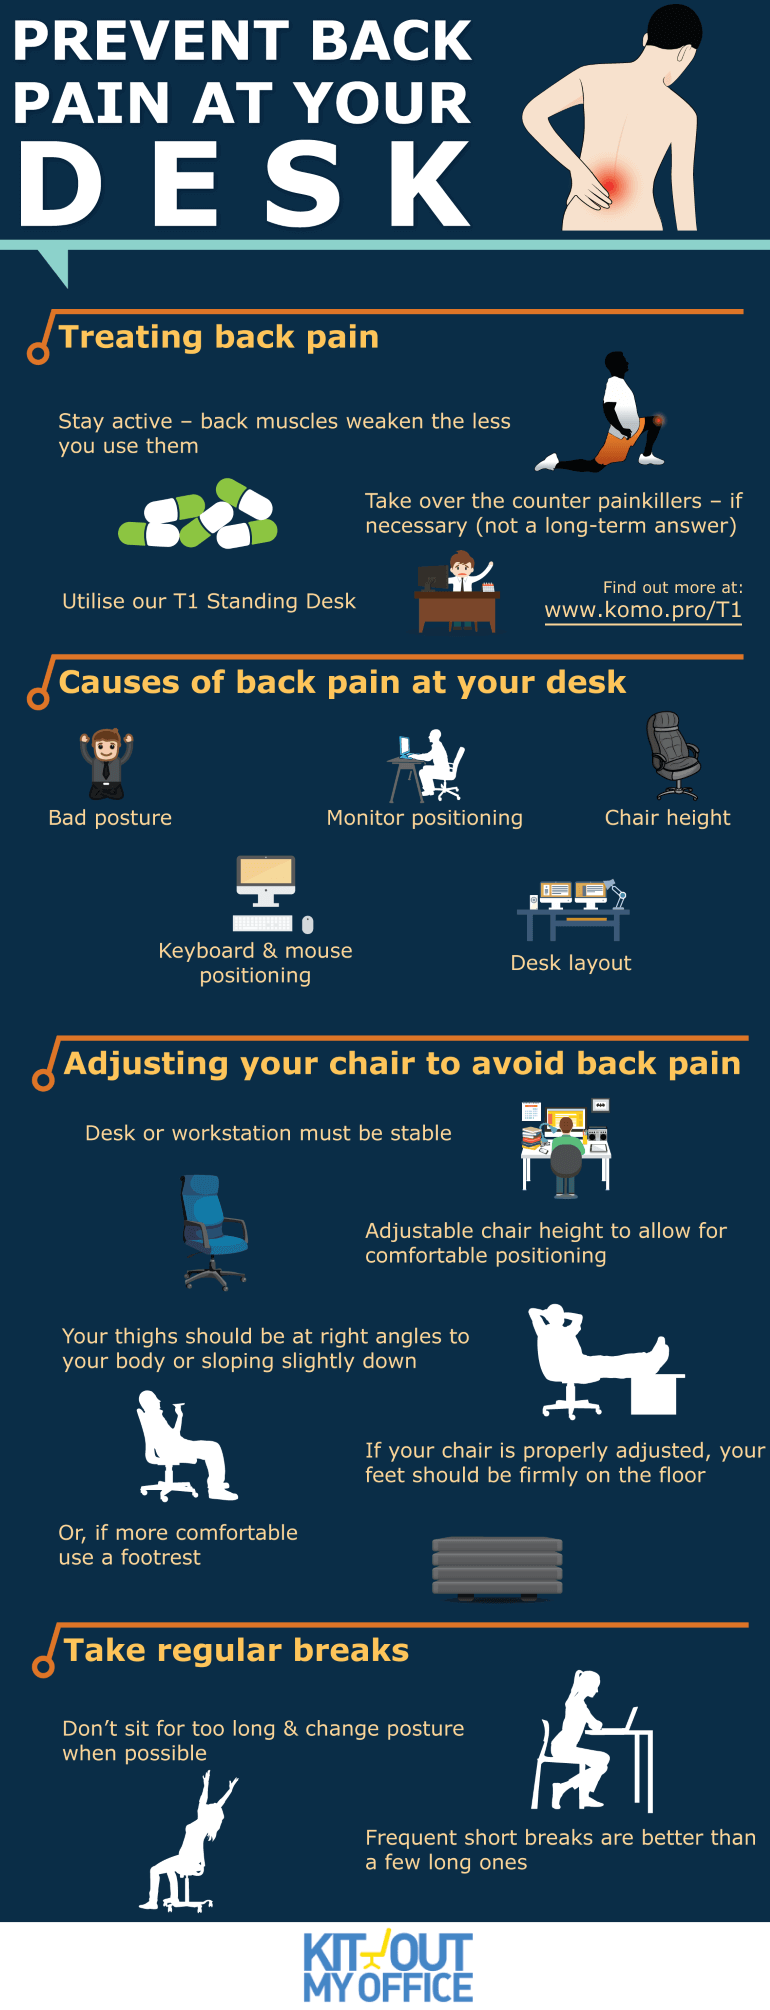 Prevent Back Pain at your Desk